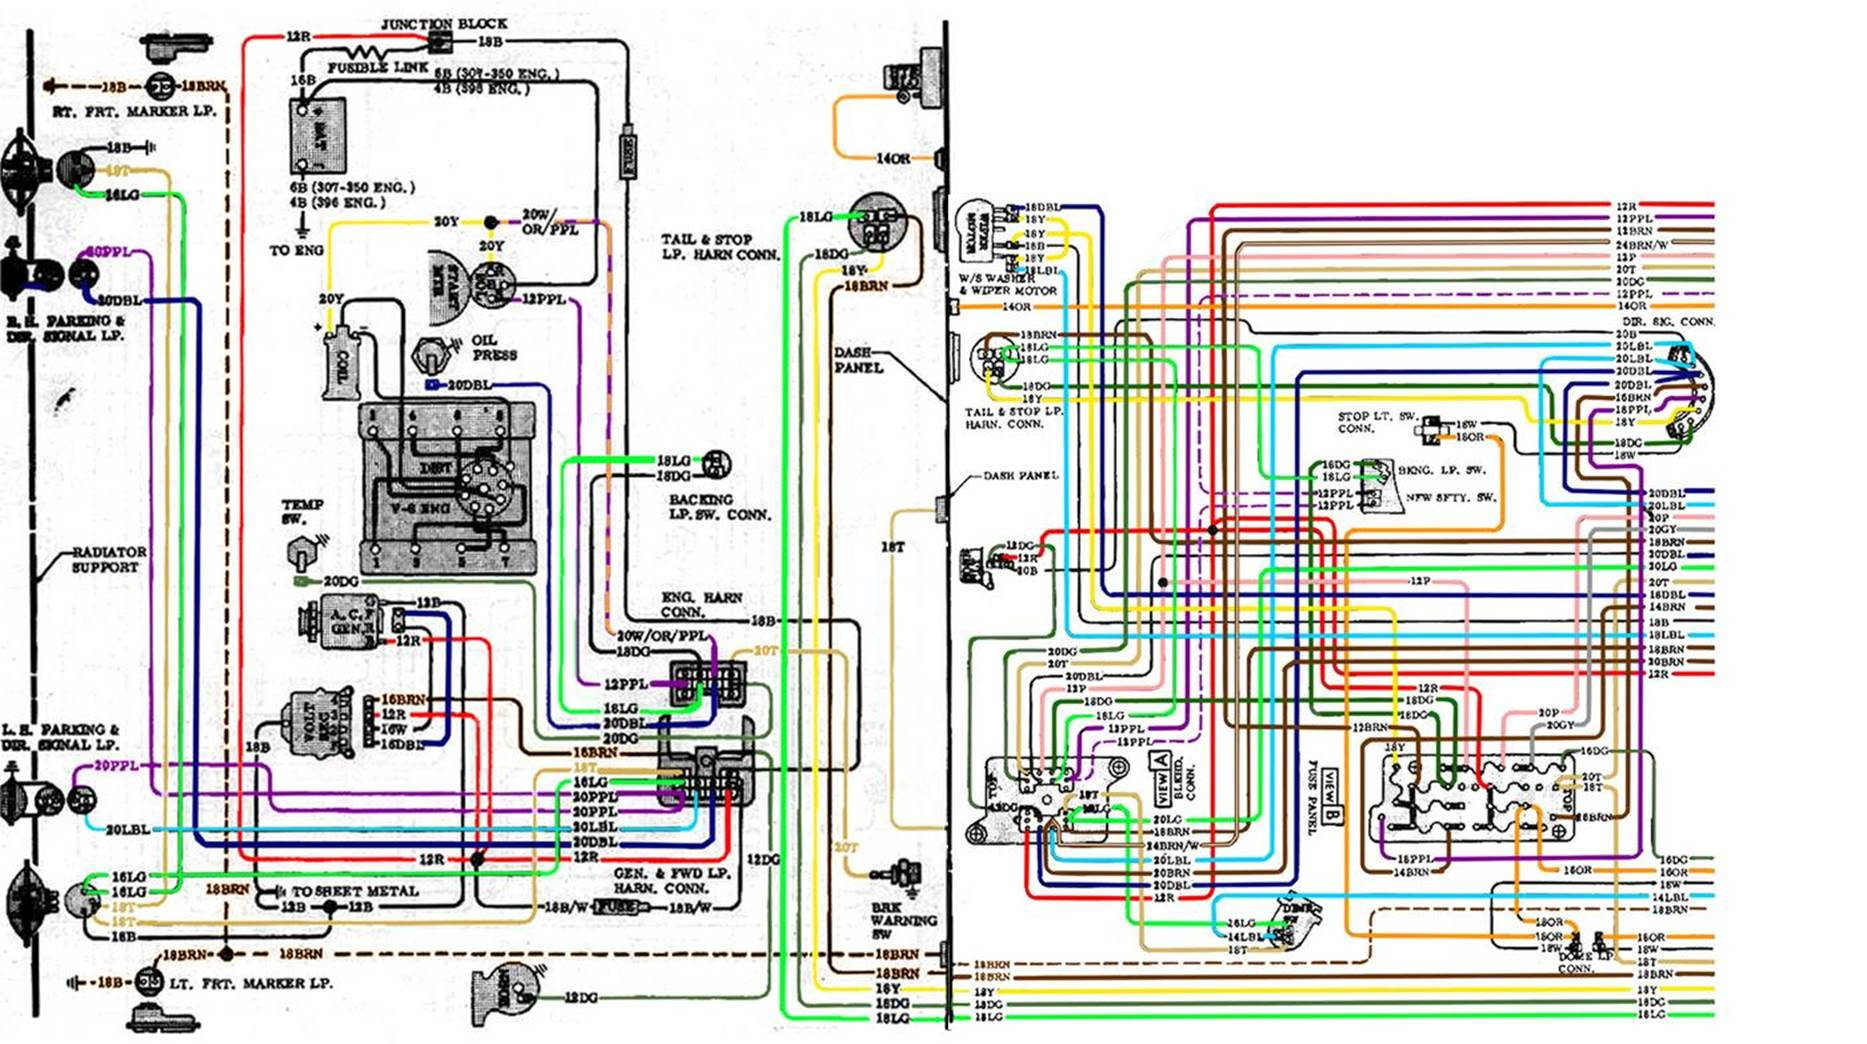 71 chevelle door diagram wiring schematic reveolution of wiring rh  somegradawards co uk 1972 Chevelle Wiring